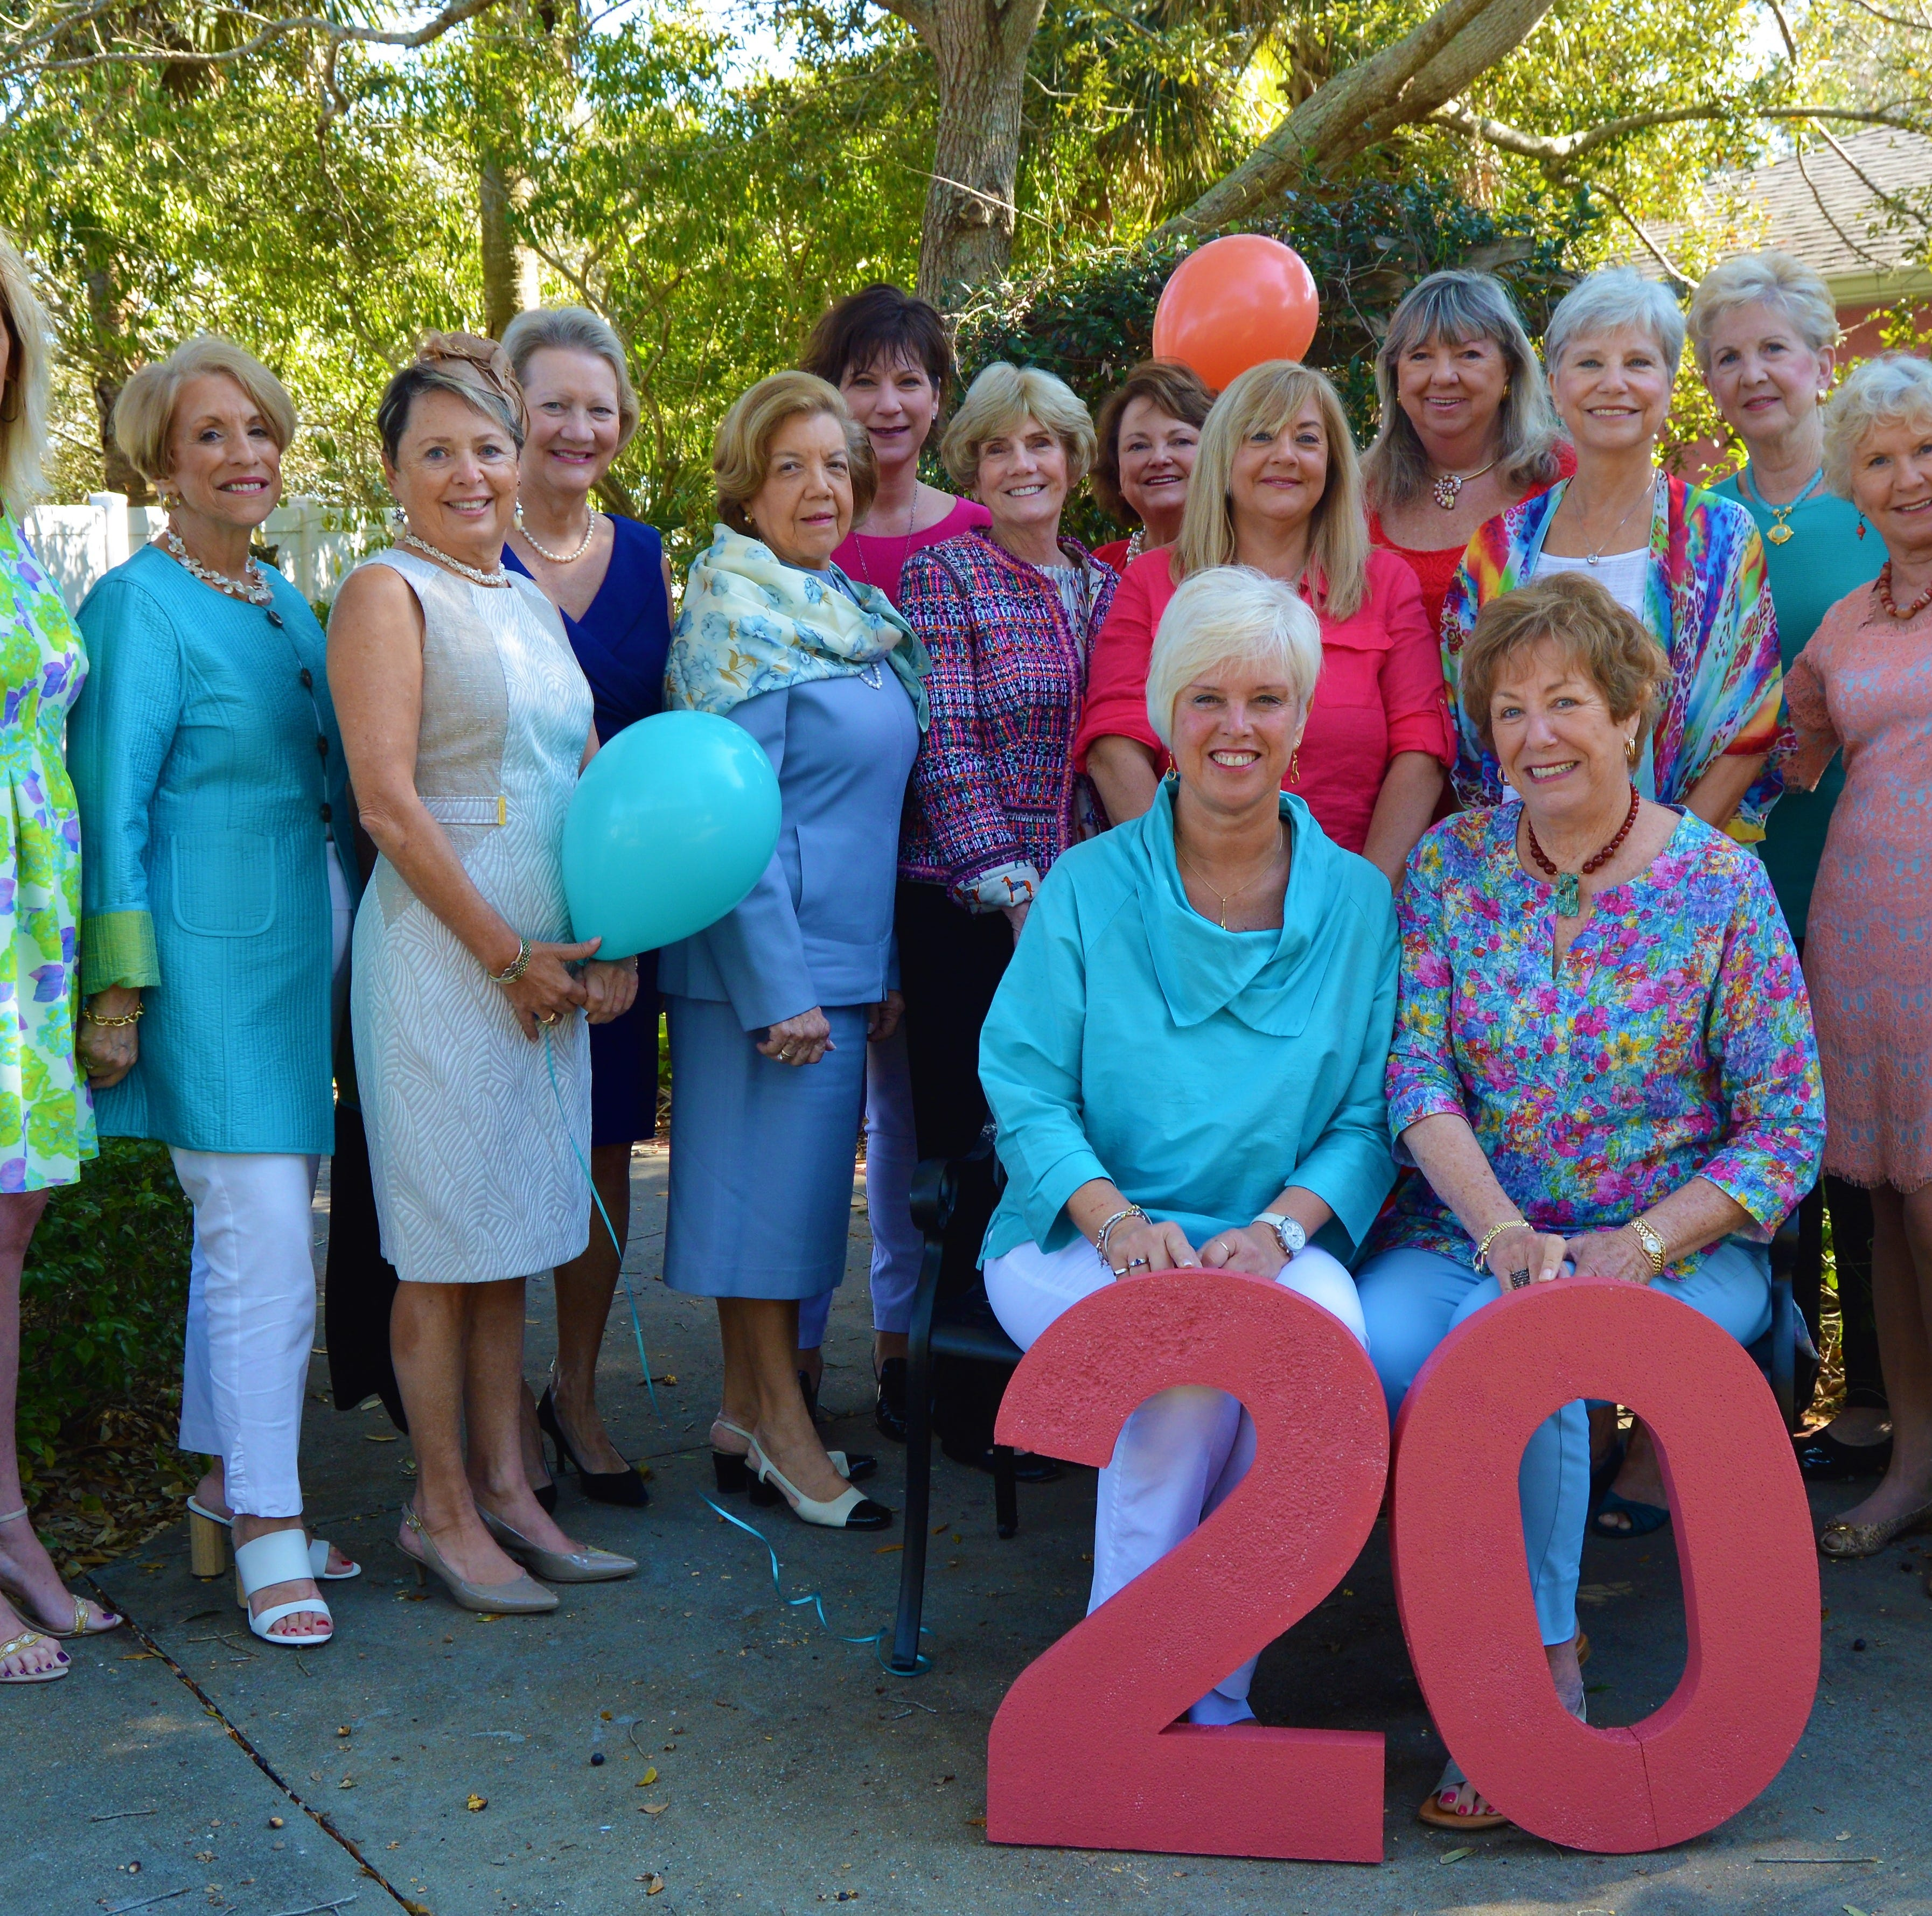 Blue Ribbon Luncheon & Fashion Show marks 20th year supporting Hibiscus Children's Center